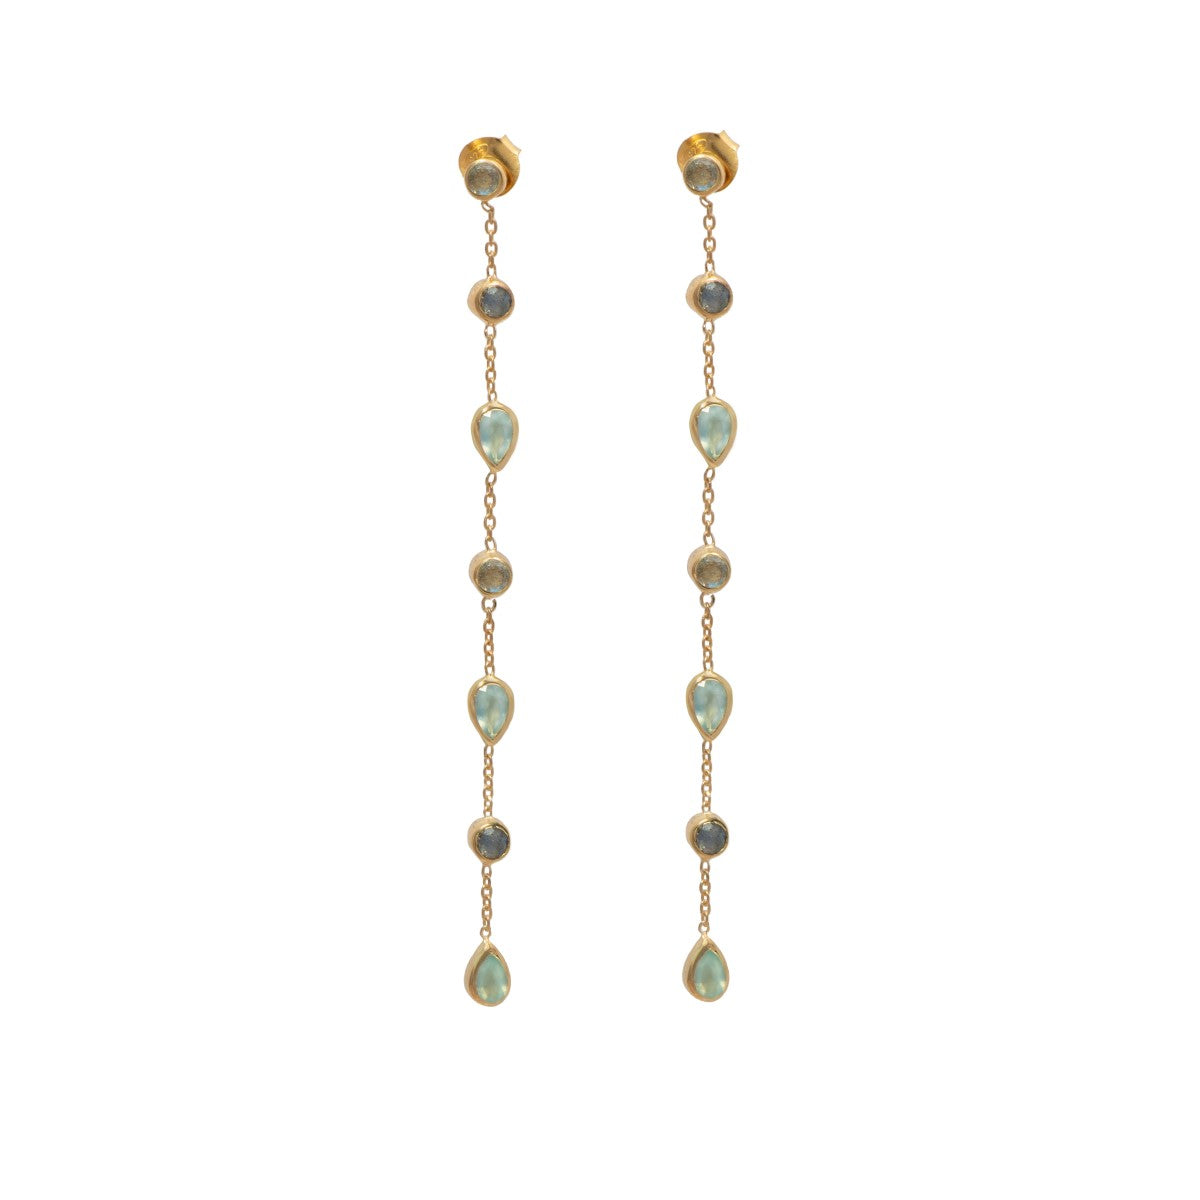 Long fine earrings with small round and teardrop gemstones - Aqua Chalcedony and Labradorite